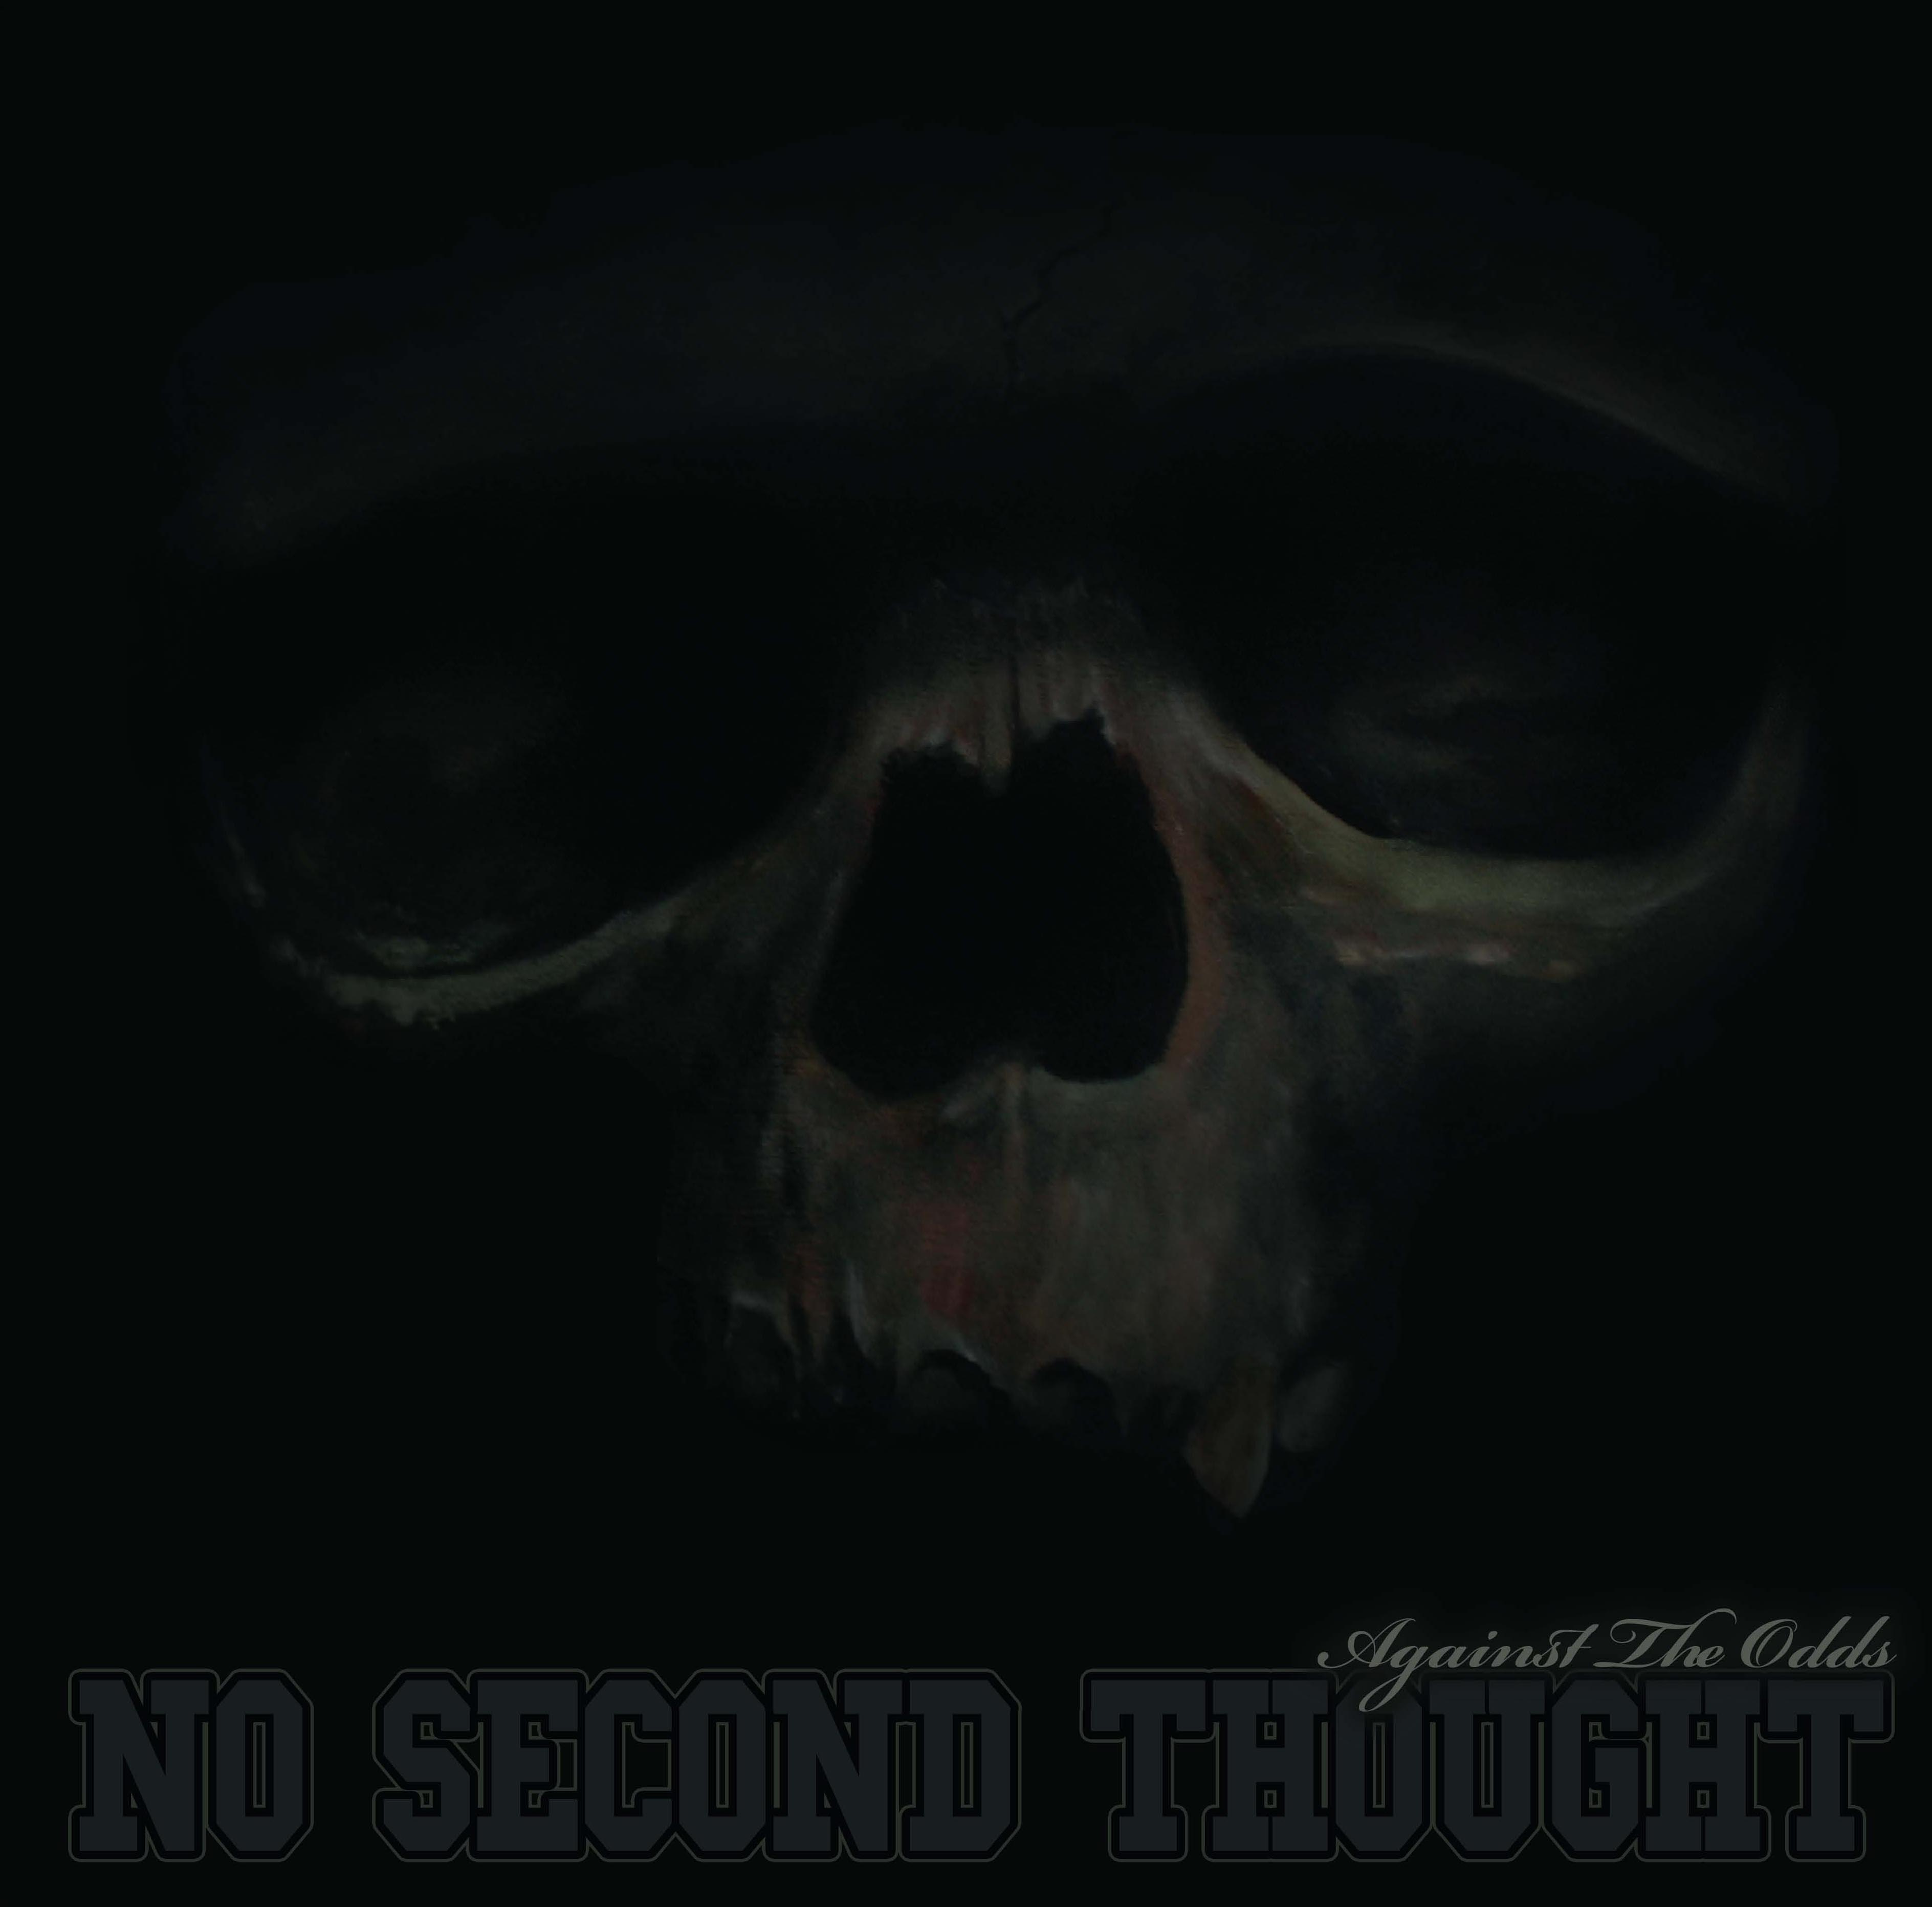 No Second Thought – Against The Odds